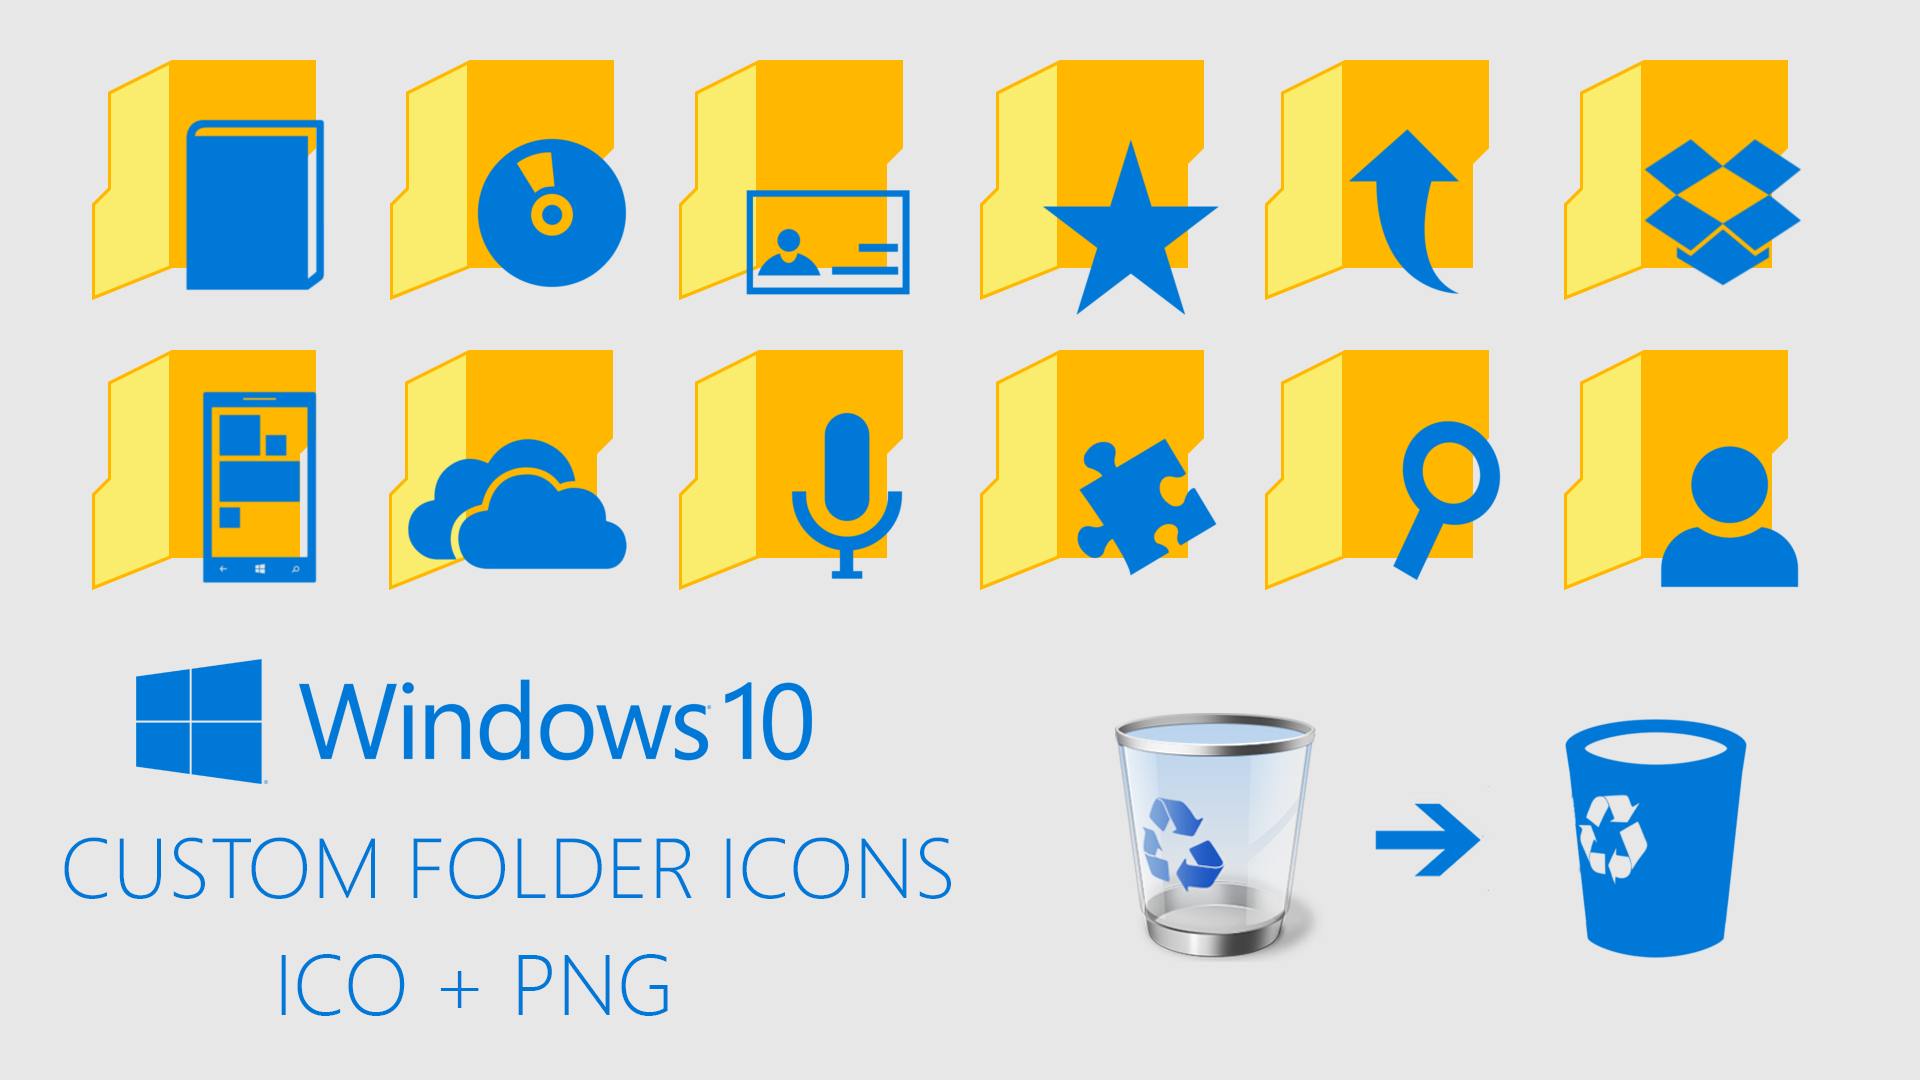 13 Custom Windows Folder Icons Images